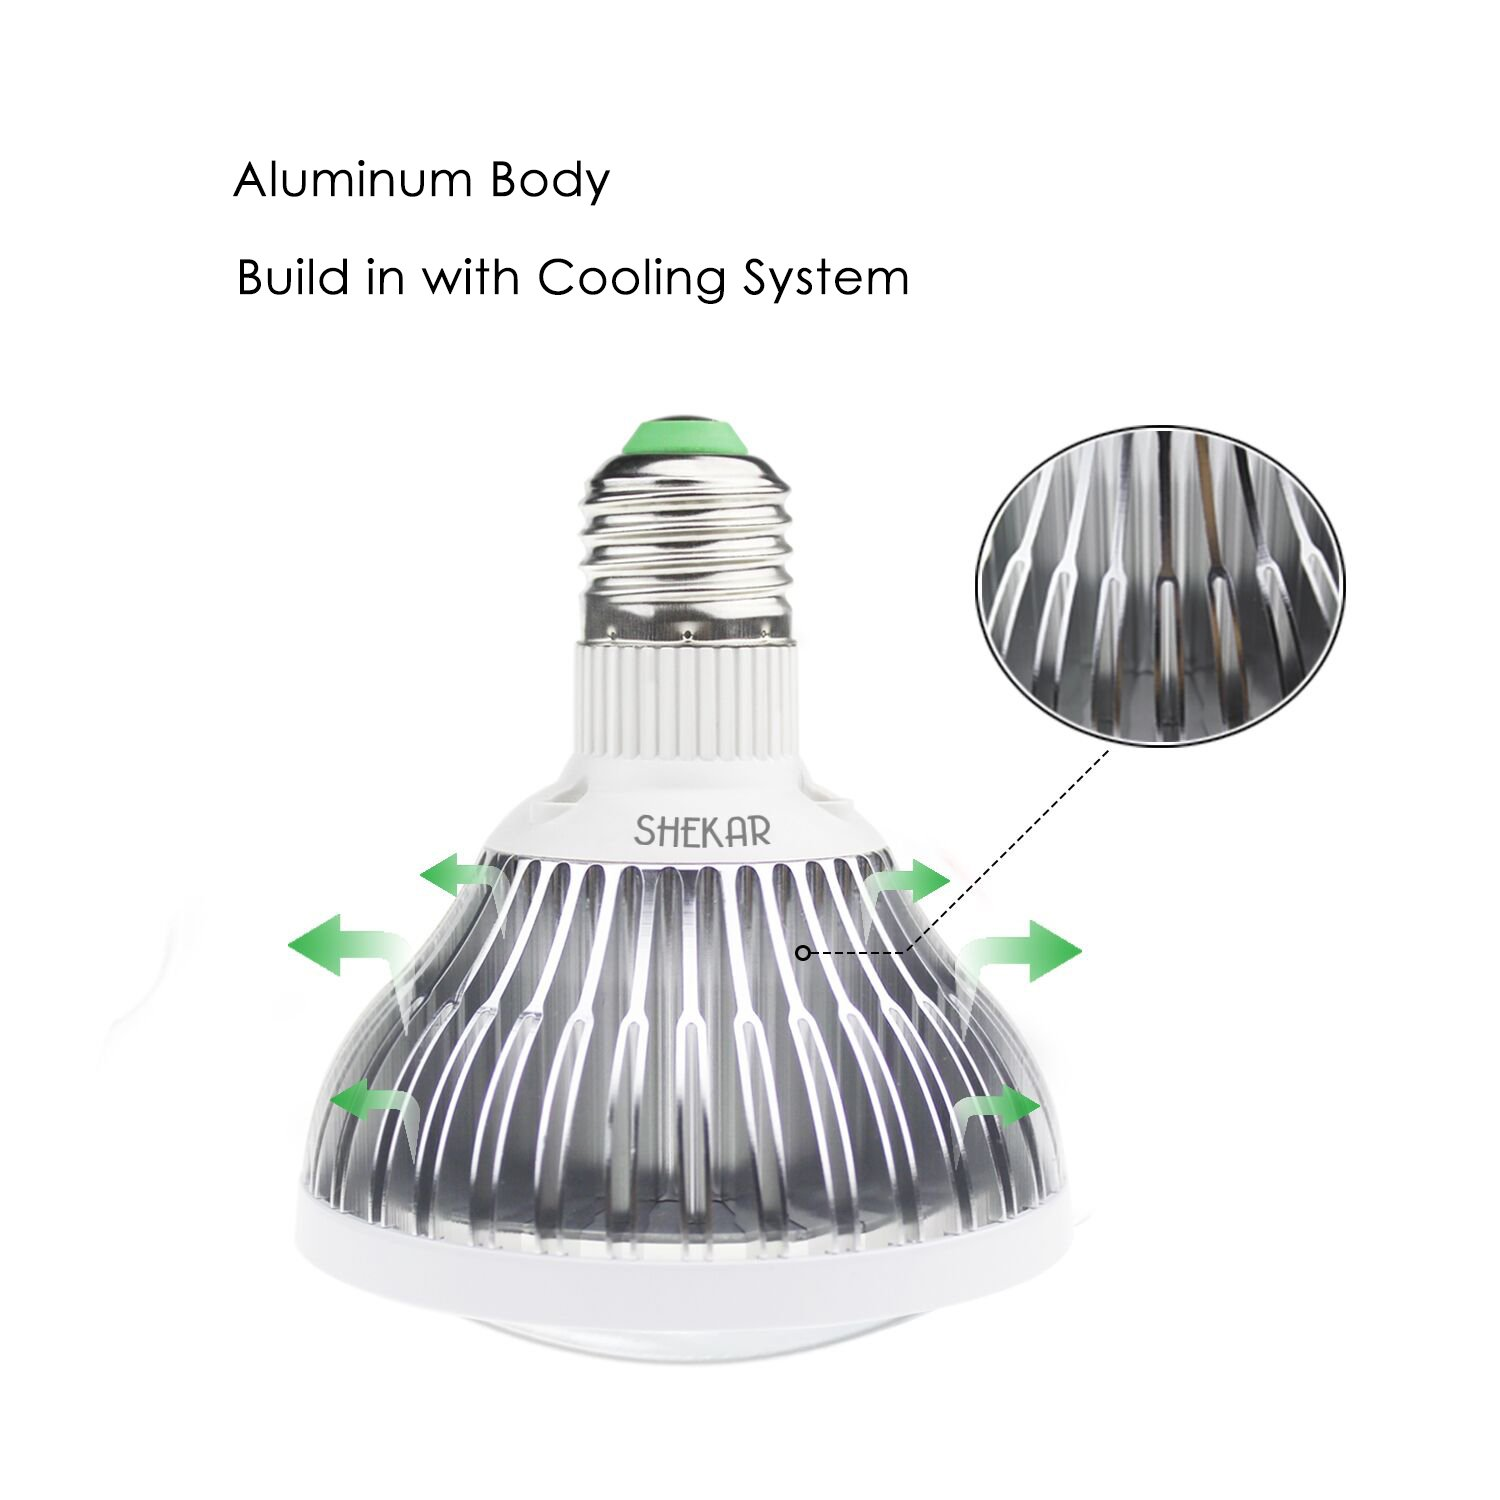 SHEKAR 50W Full Spectrum LED Plant Grow Light Bulb with Shield | Growing Lamp for Home, Indoor Garden Greenhouse and Hydroponic Aquatic (E27, 78LEDs) by SHEKAR (Image #3)